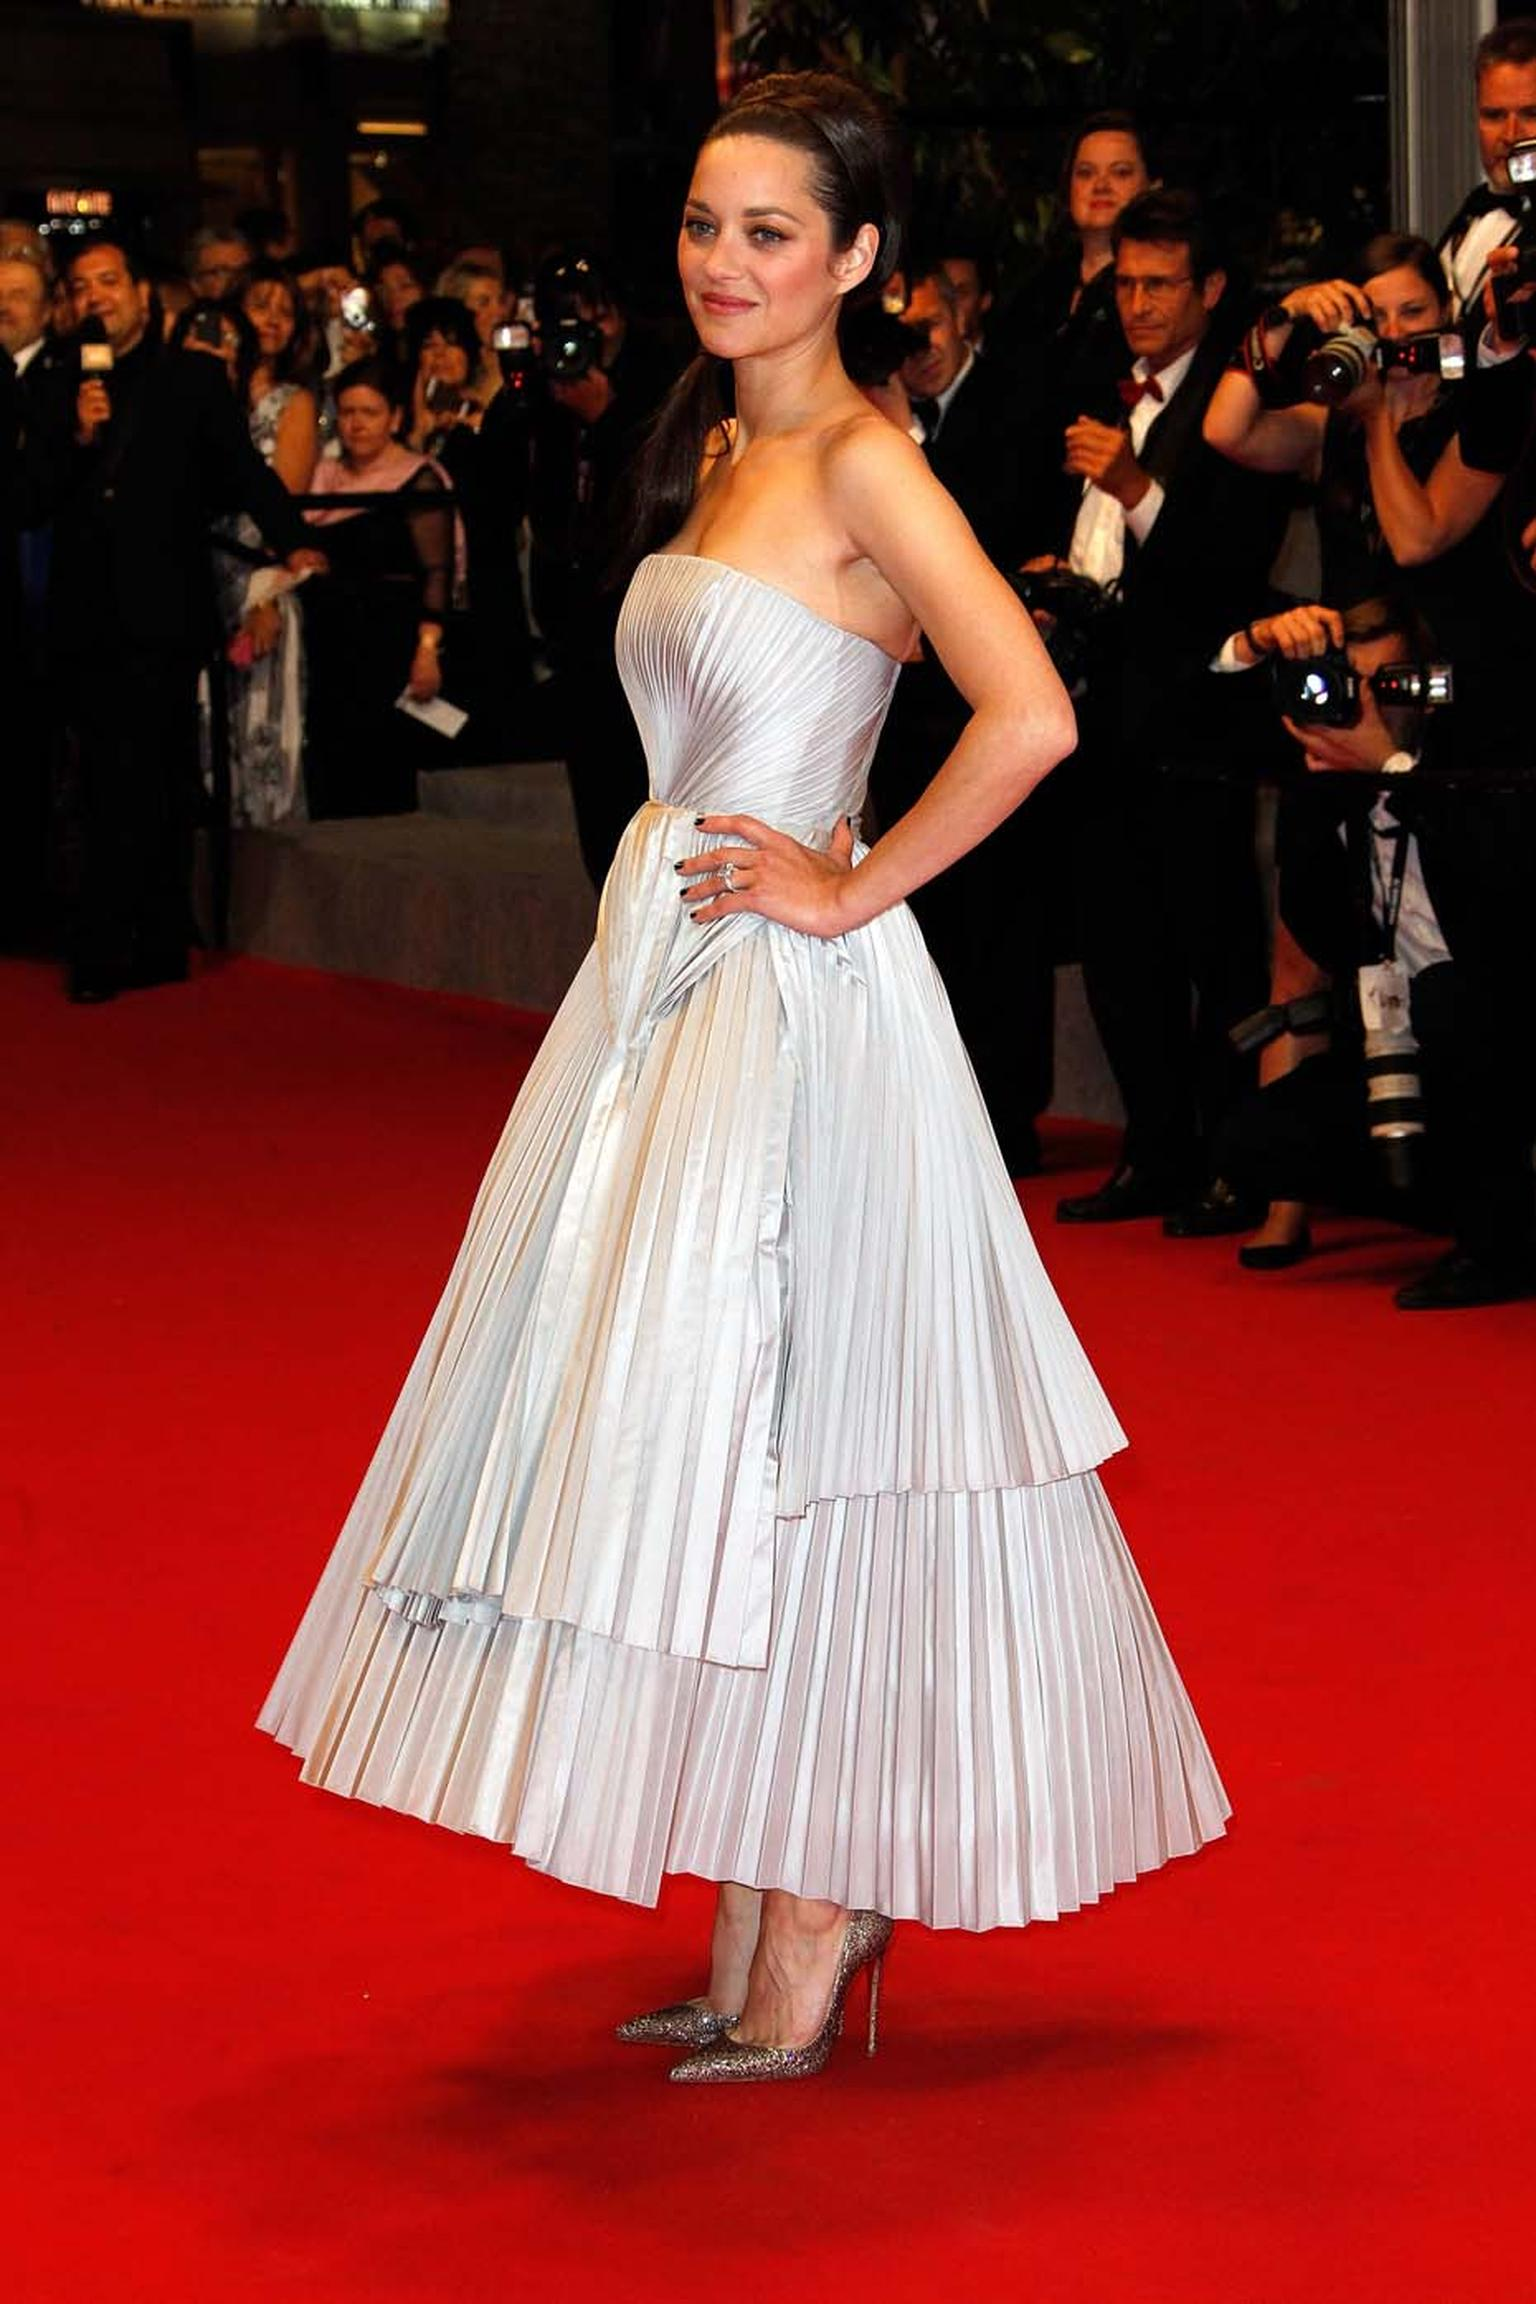 Marion Cotillard simply stuns on the Cannes Red Carpet in a Chopard diamond bracelet and earrings.